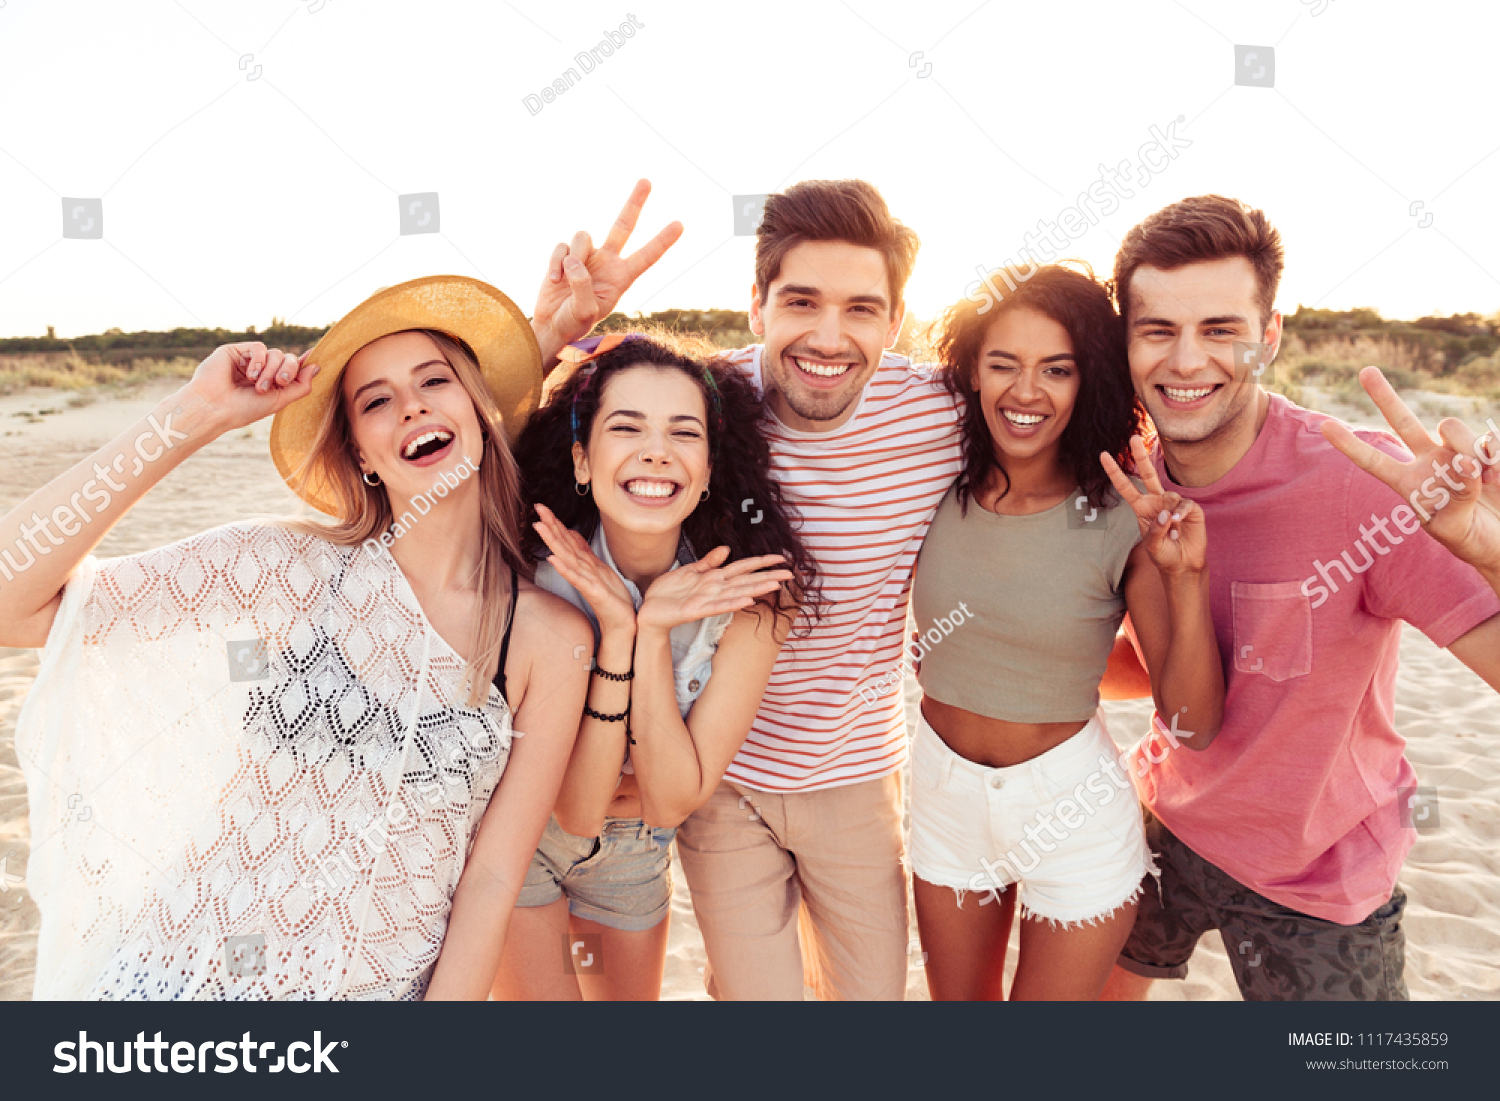 stock-photo-portrait-of-happy-young-mult